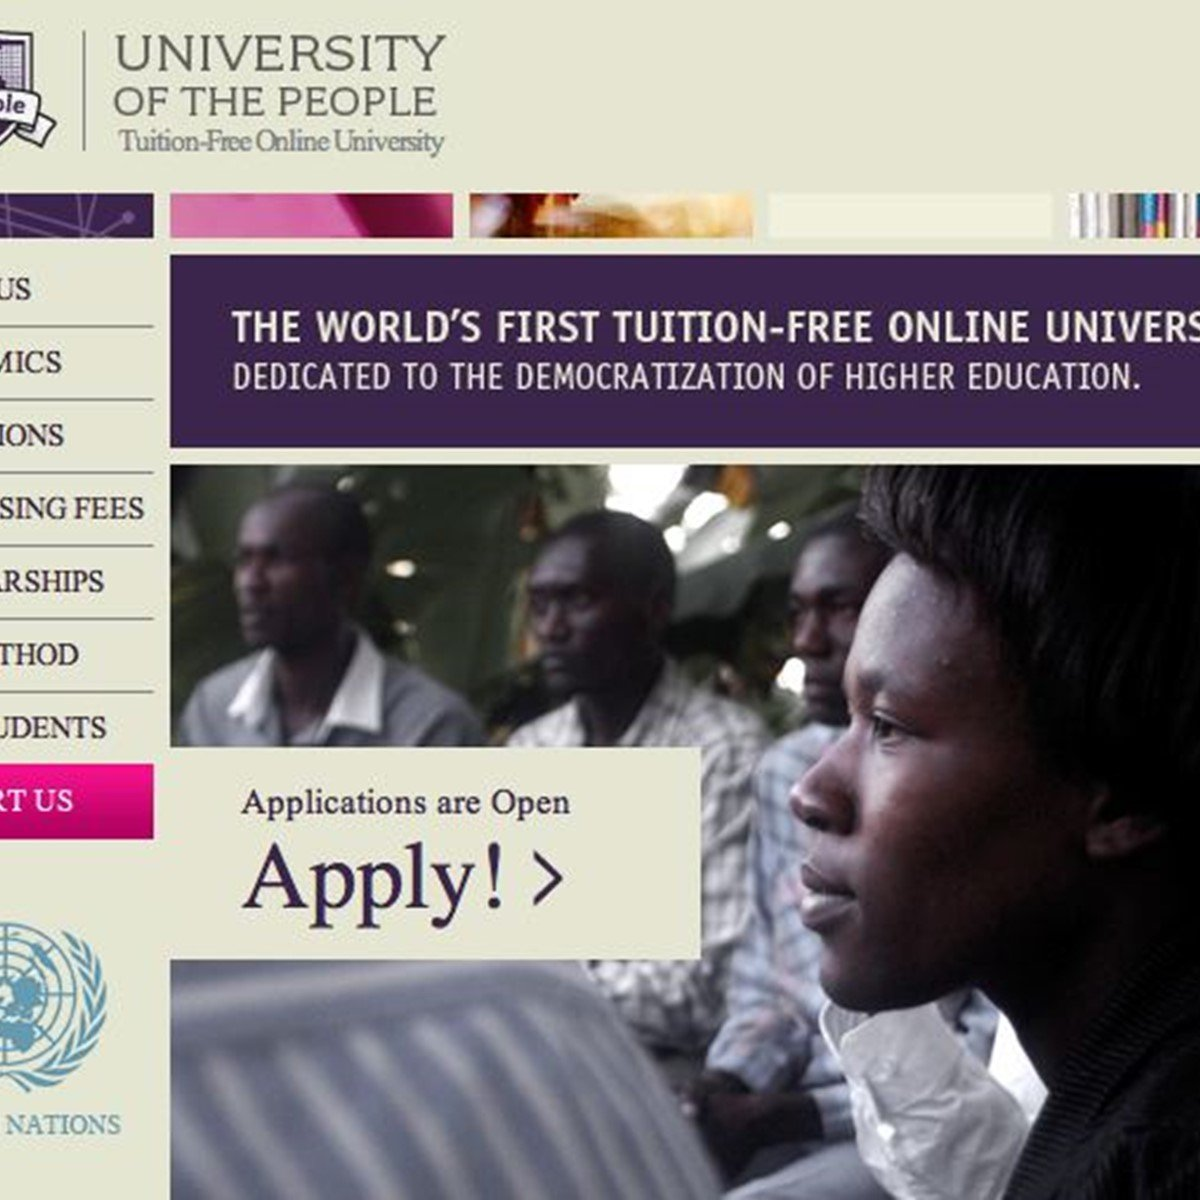 University of the People Alternatives and Similar Websites and Apps